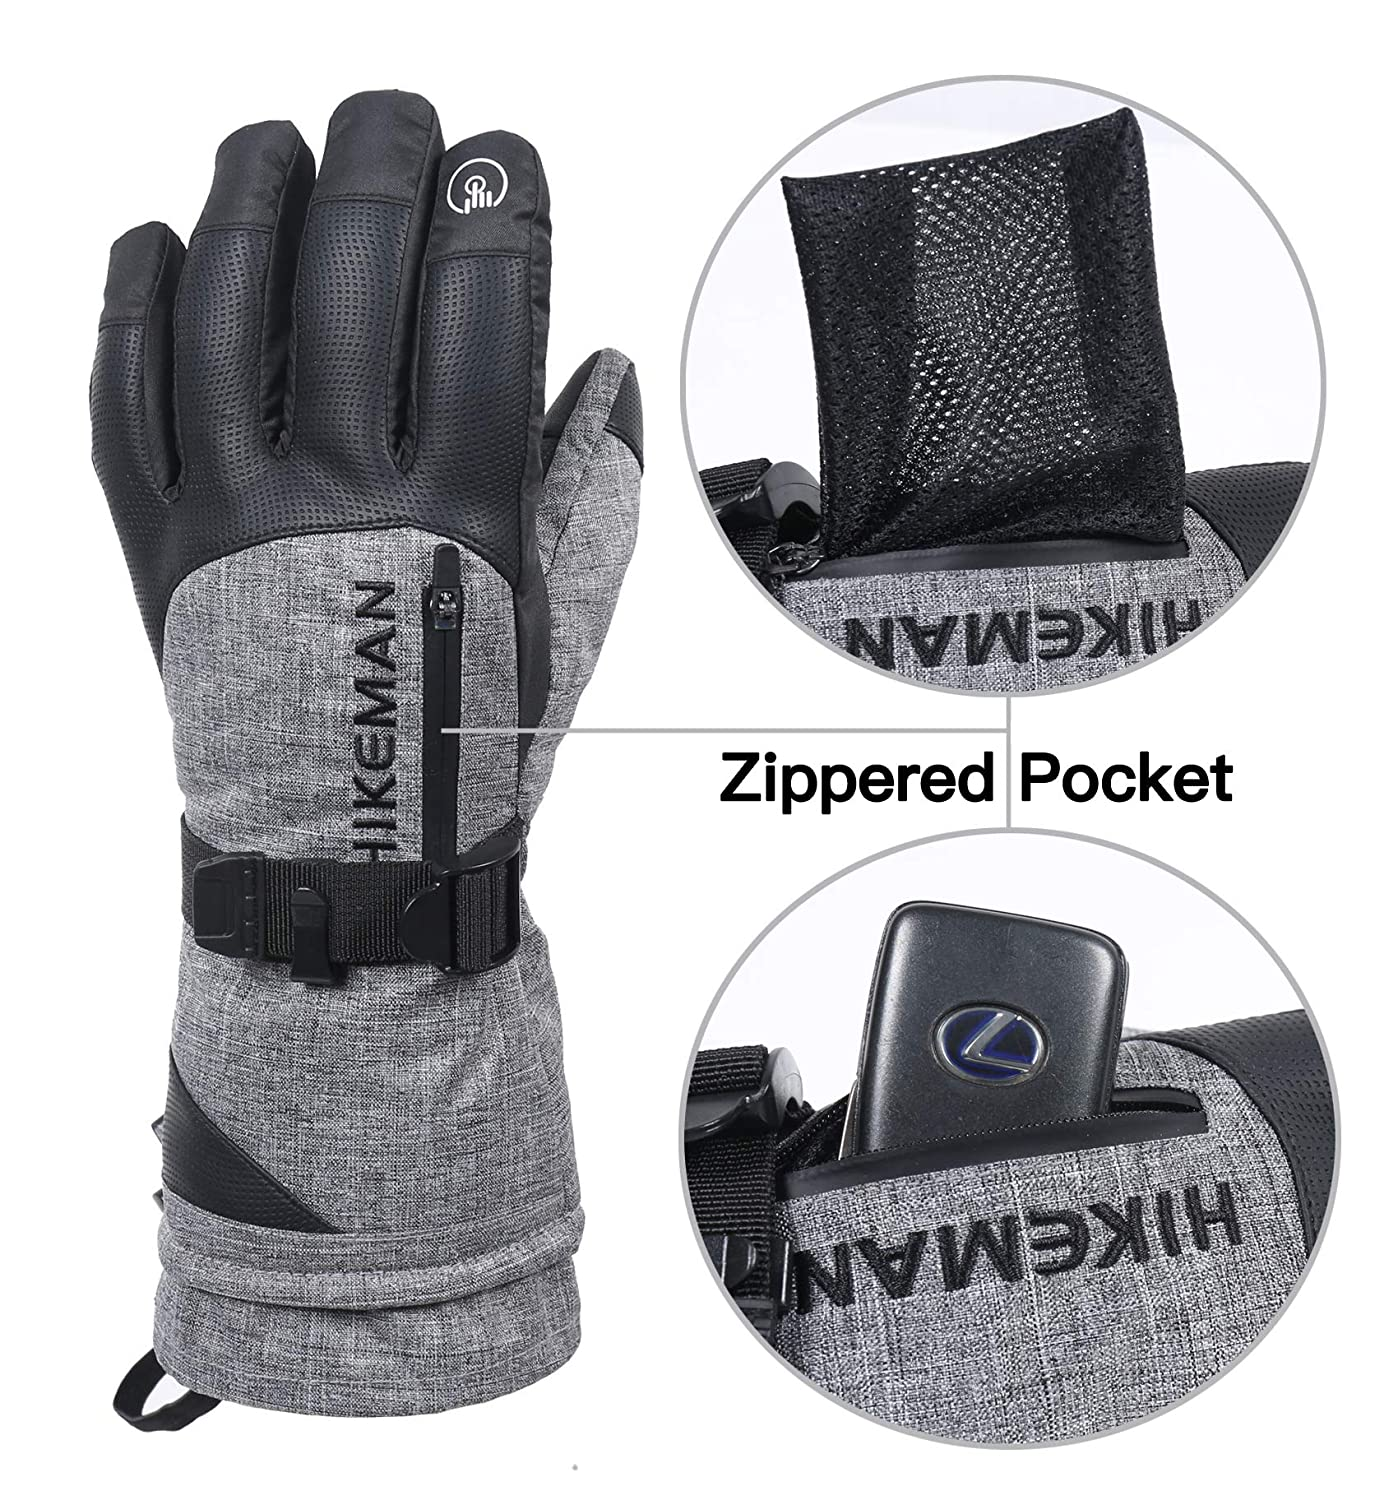 Snow Ski Gloves Cold Weather Gloves 3M-Thinsulate Warm Windproof Snowboard Gloves Touchscreen For Skiing Riding Skating